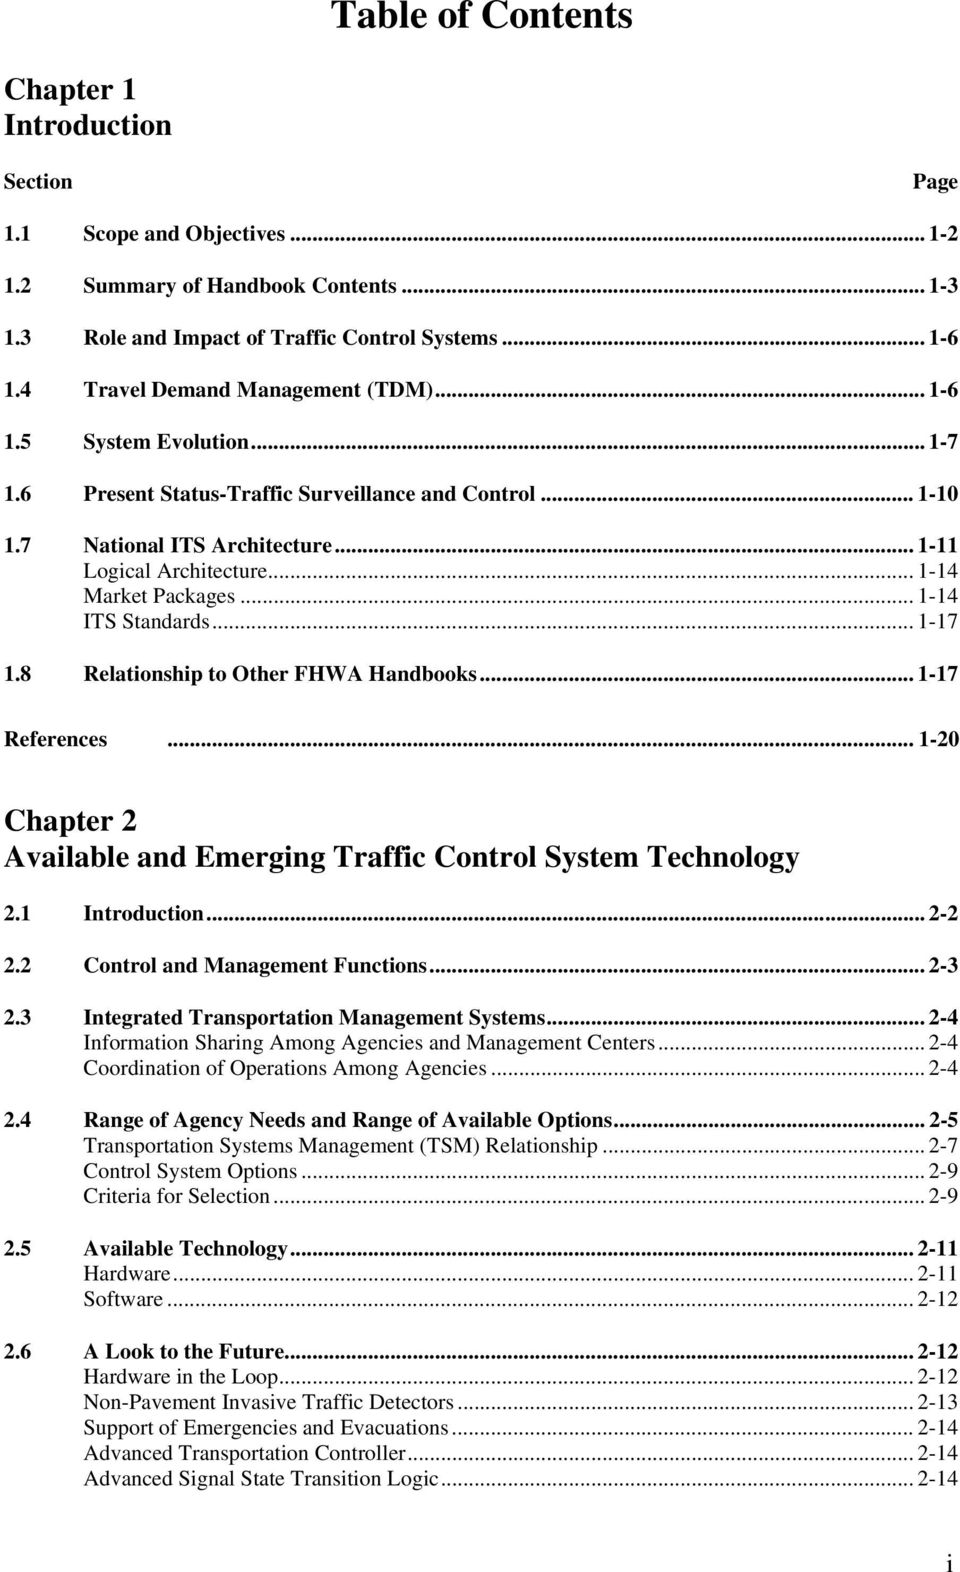 .. 1-14 Market Packages... 1-14 ITS Standards... 1-17 1.8 Relationship to Other FHWA Handbooks... 1-17 References... 1-20 Chapter 2 Available and Emerging Traffic Control System Technology 2.